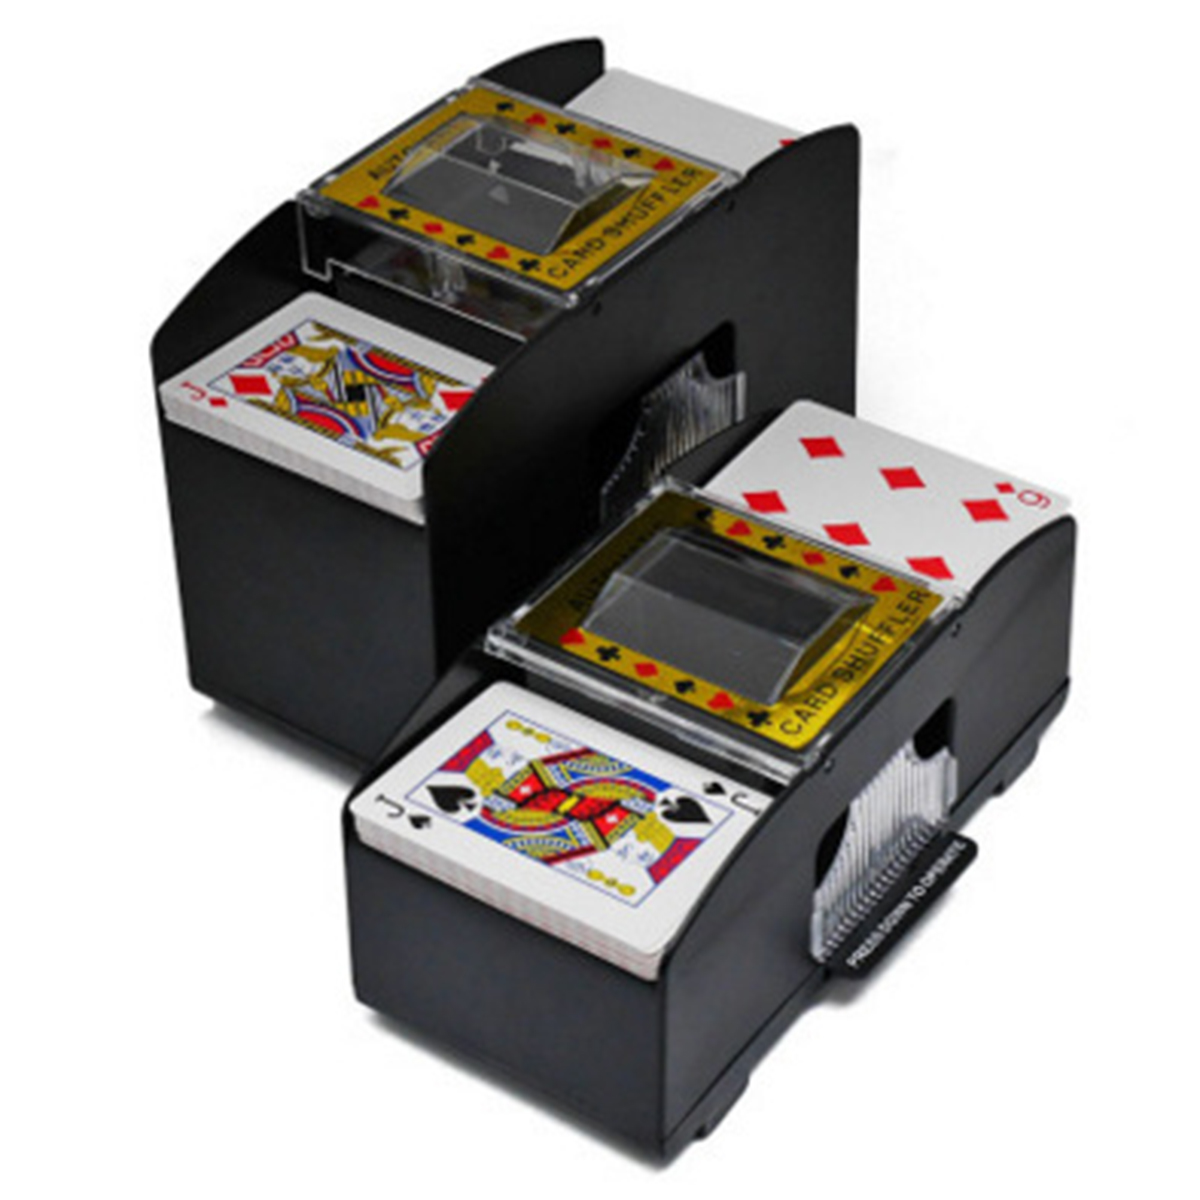 high-quality-automatic-font-b-poker-b-font-card-shuffler-electric-shuffling-machine-entertainment-activity-suitable-for-home-party-club